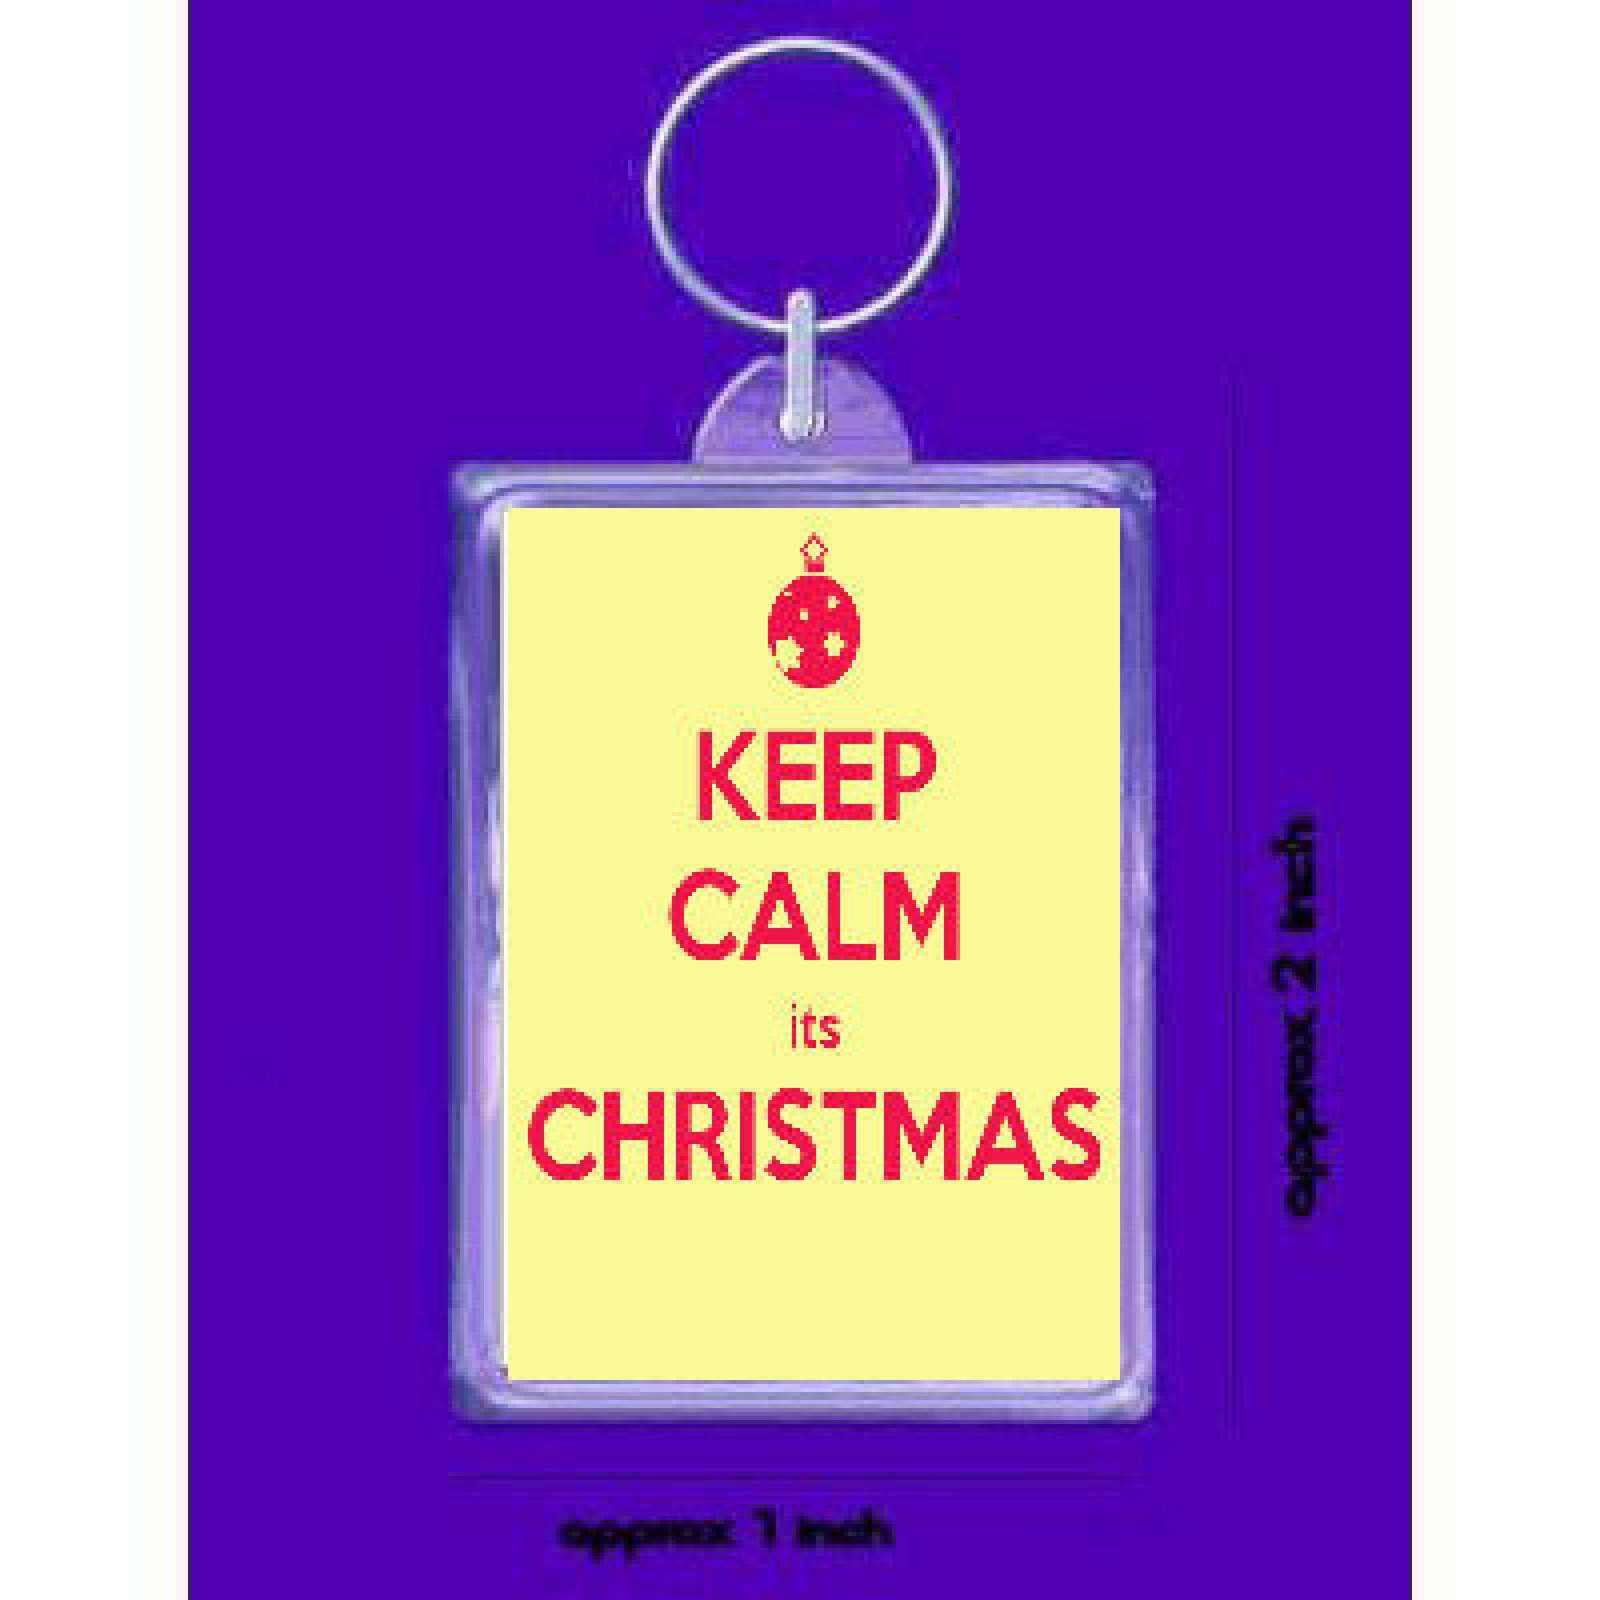 keep calm its christmas  handmade in uk from uk made parts keyring, ke